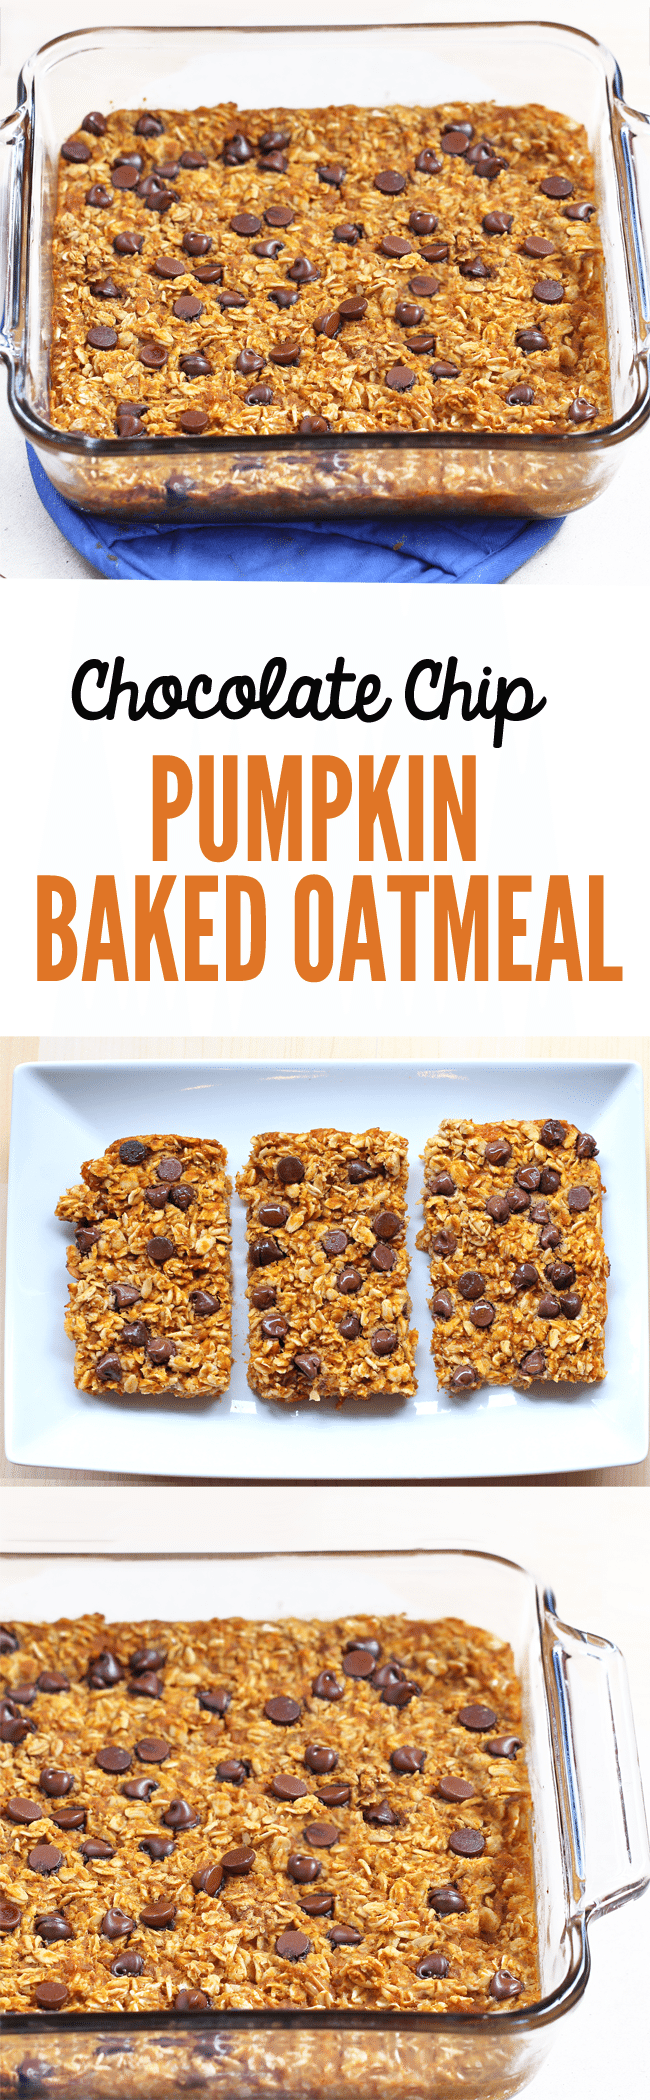 Pumpkin Baked Oatmeal - 2 cups oats, 1 cup pumpkin, 1 tsp cinnamon, 2 tsp vanilla, 1 1/2 cups... Full recipe: https://chocolatecoveredkatie.com/2014/11/13/pumpkin-baked-oatmeal/ @choccoveredkt